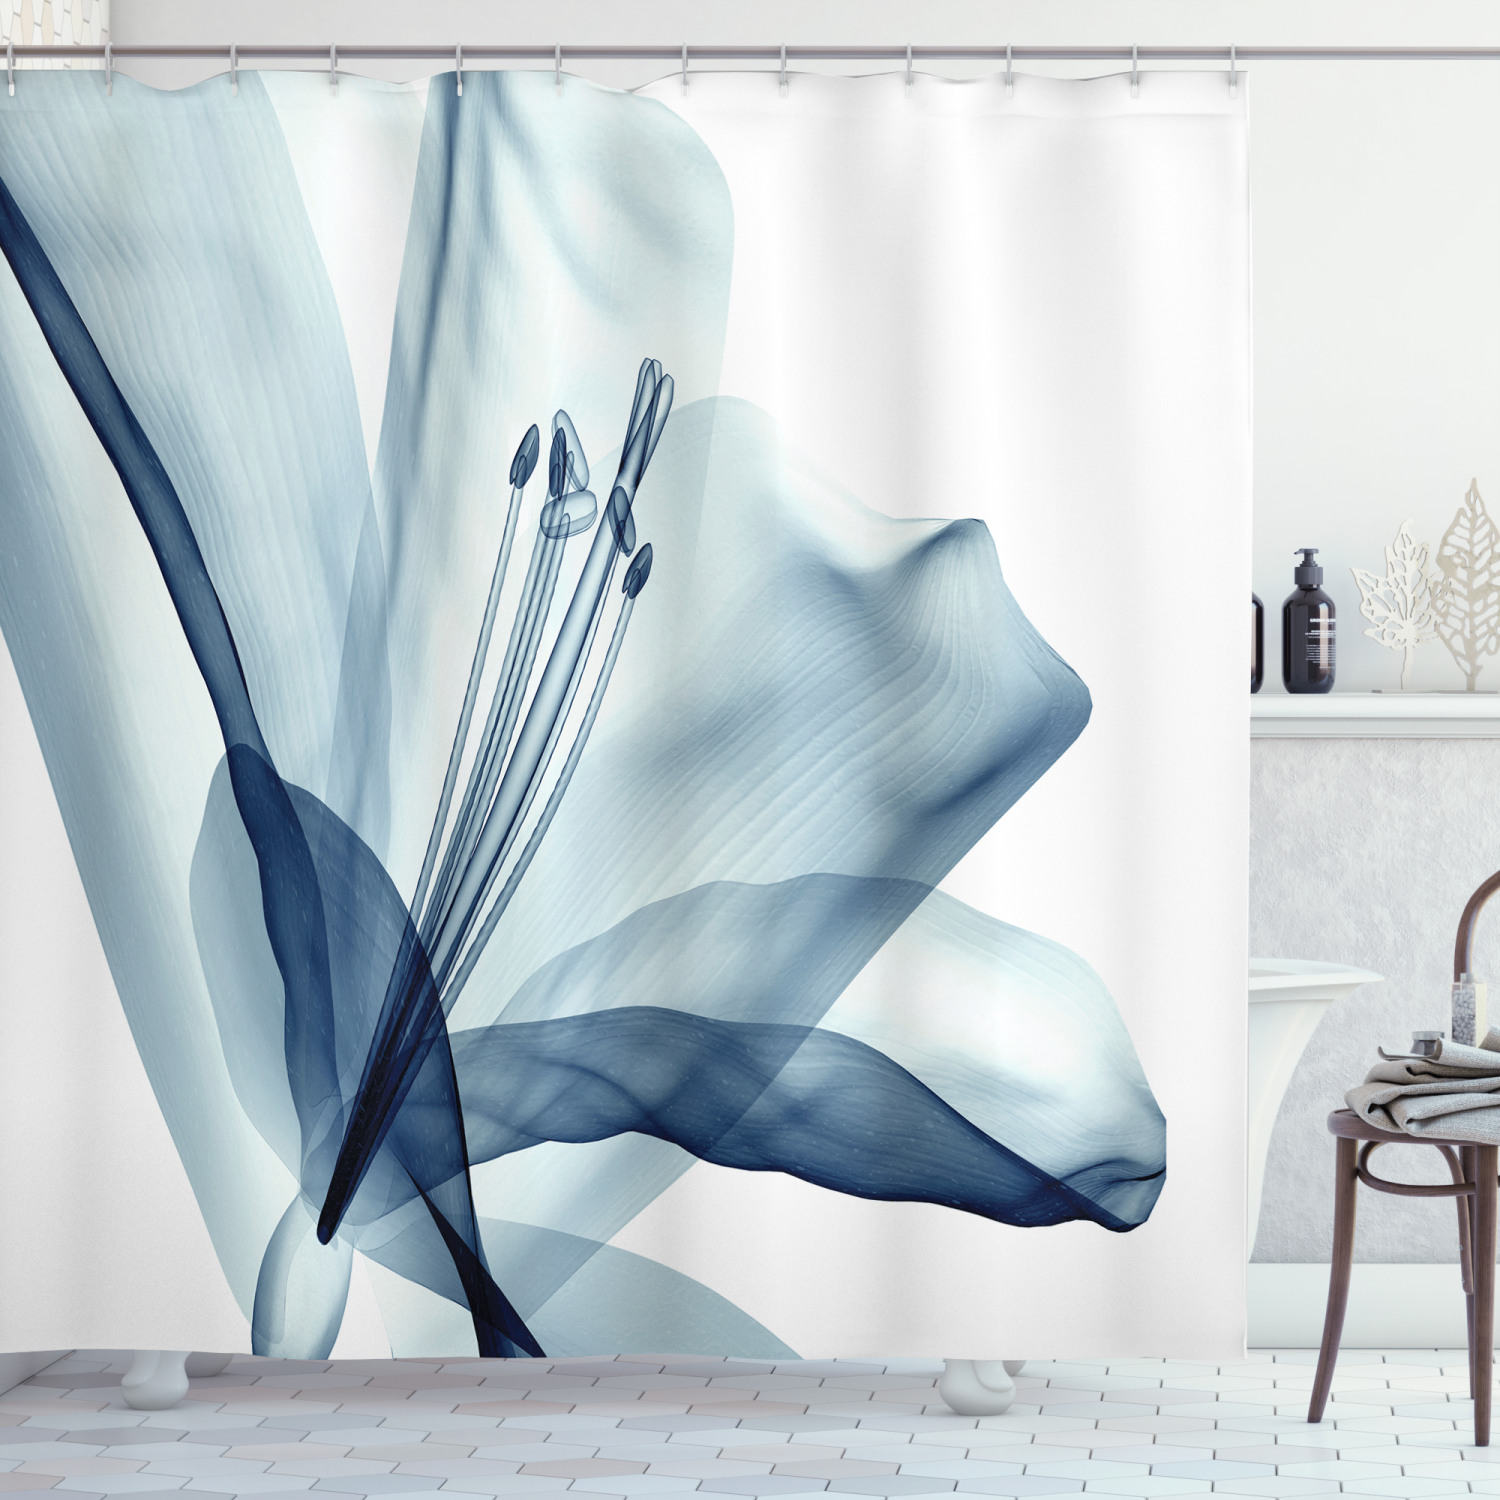 xray flower decor shower curtain set a close look to an elegant flower with x ray closer look to the nature art print bathroom accessories 69w x